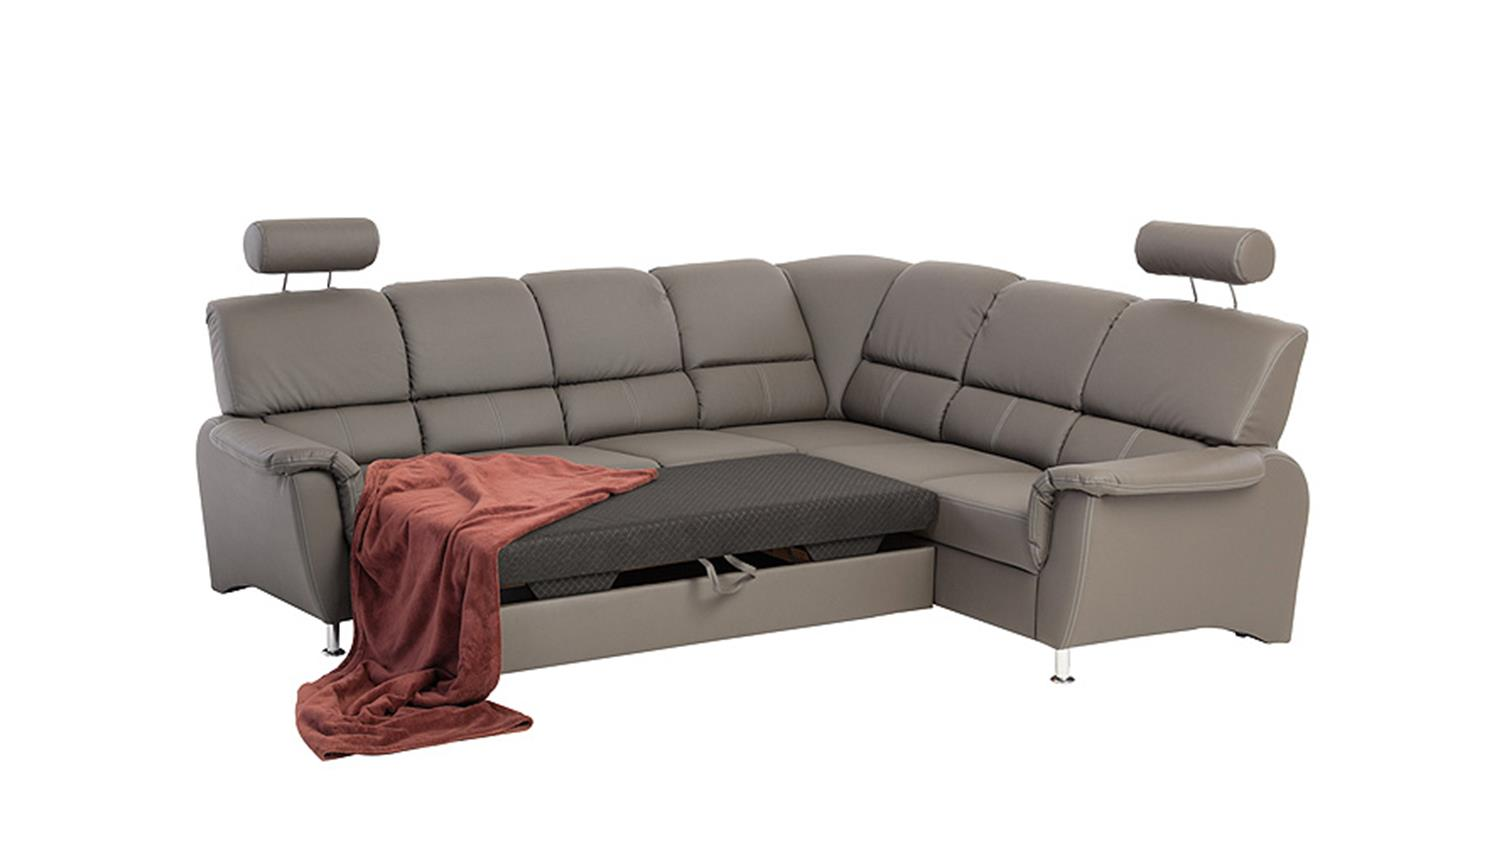 Sessel Mit Bettfunktion Ecksofa Pisa Eckgarnitur L-sofa Dunkelgrau Bettfunktion